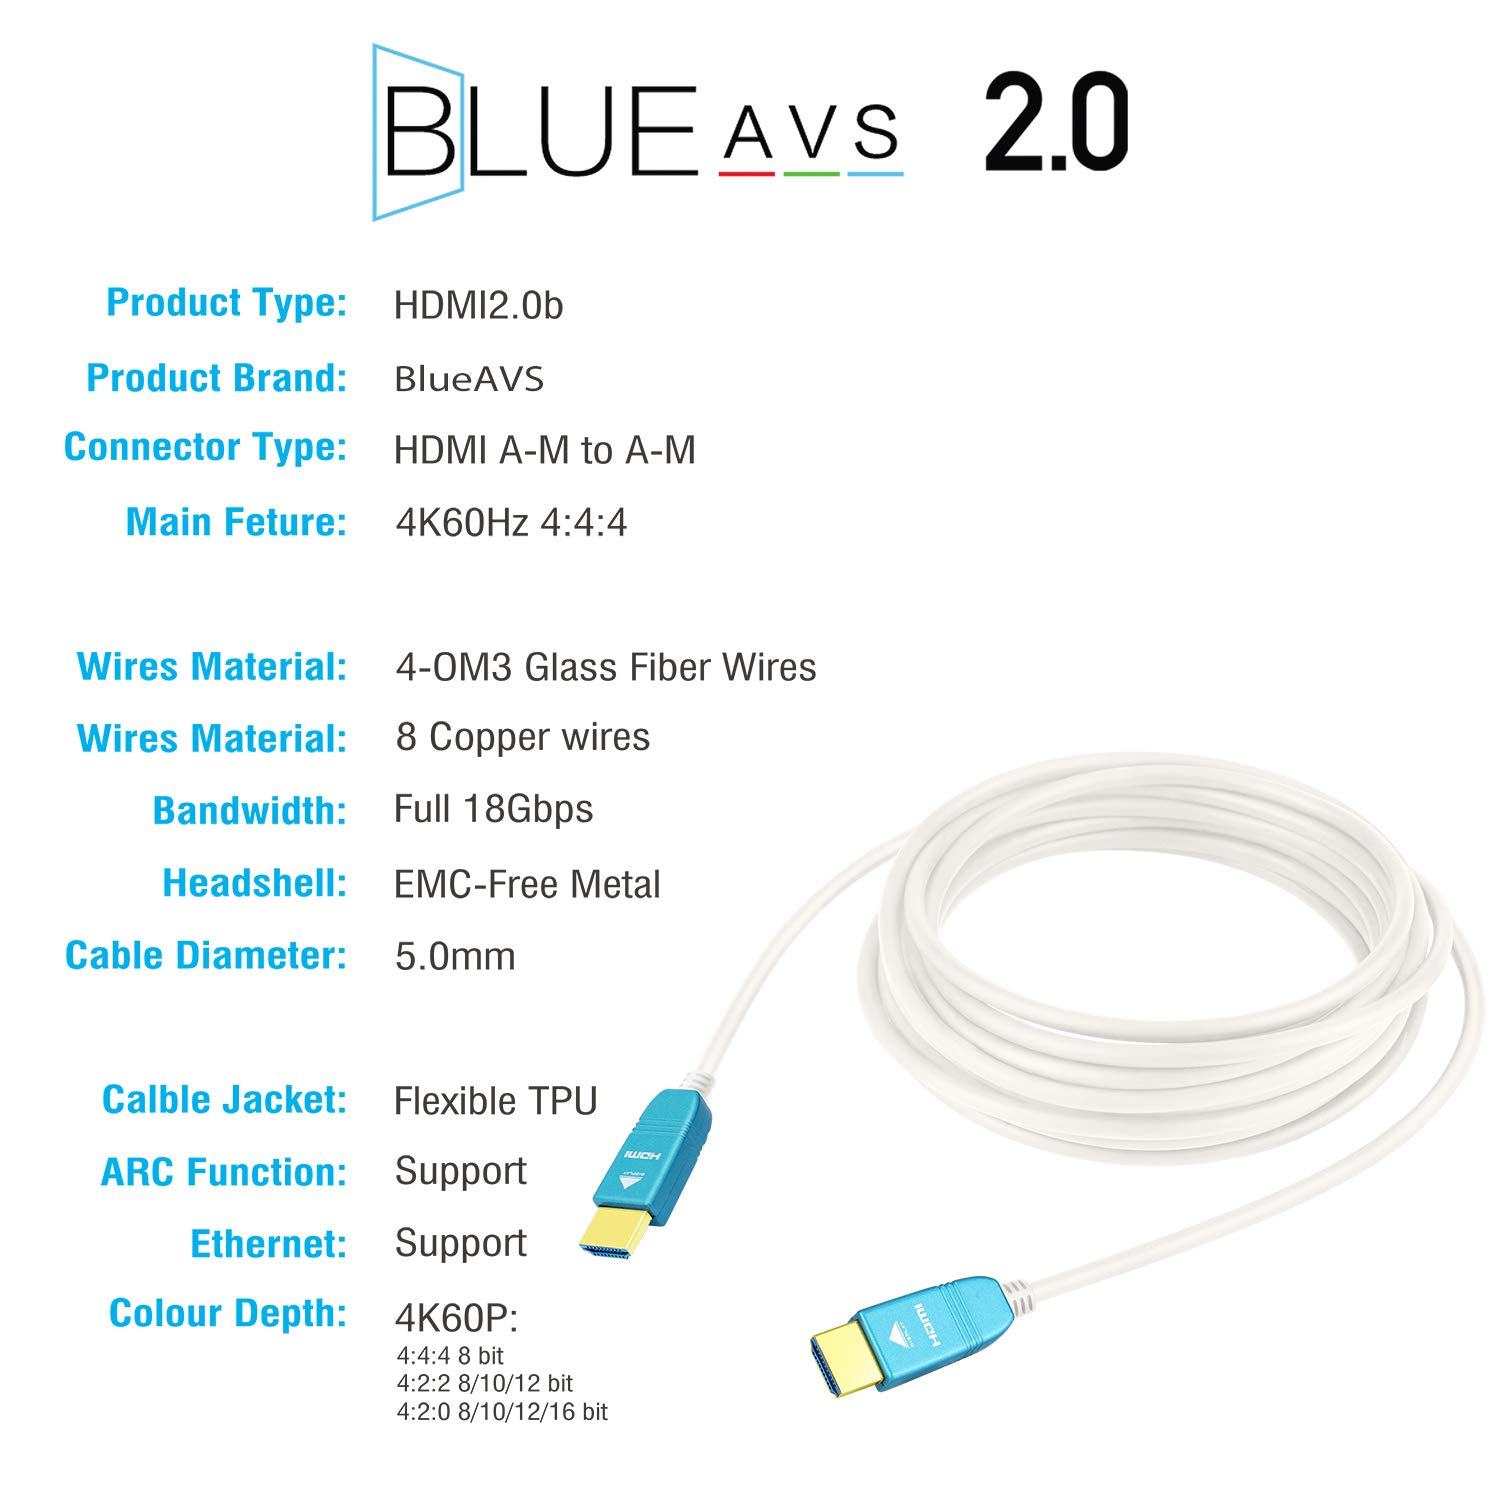 HDMI Cable 30ft, BlueAVS Fiber Optic Cable 4K 60Hz 9m HDMI 2.0b High-Speed 18Gbps Dolby Vision HDCP2.2, 3D / HDR/ARC, 4:4:4/4:2:2/4:2:0 White by BlueAVS (Image #4)